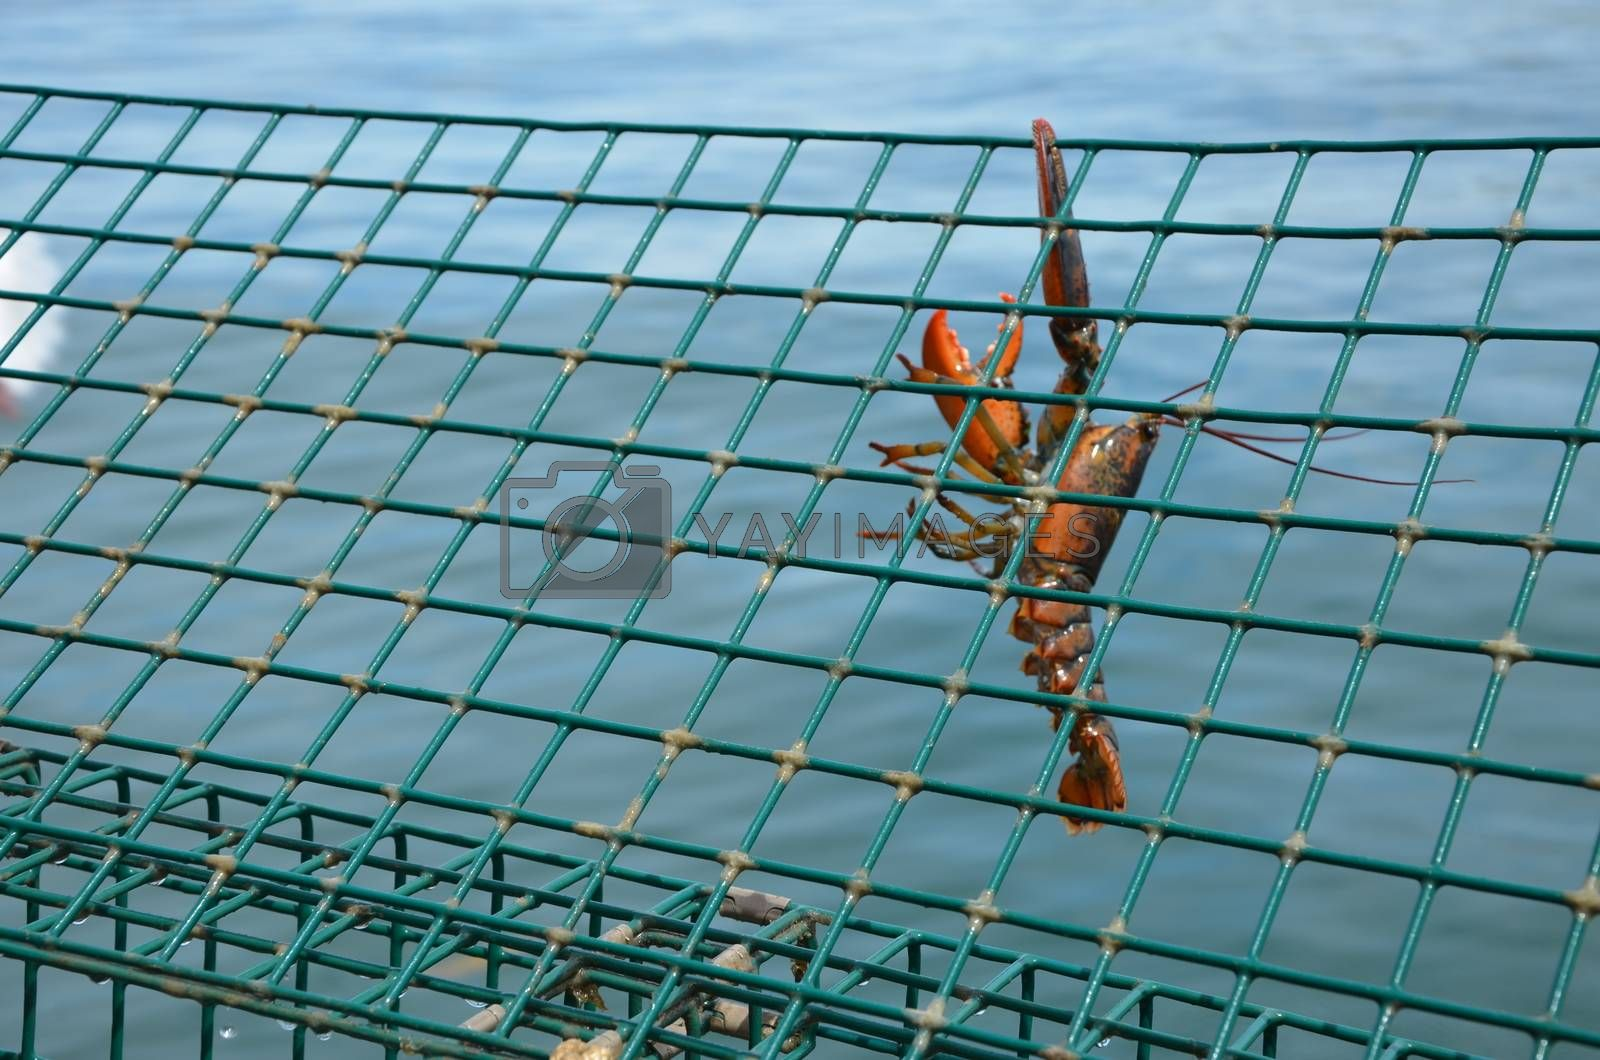 Lobster haging from a trap before being dropped back into the sea for being to small.